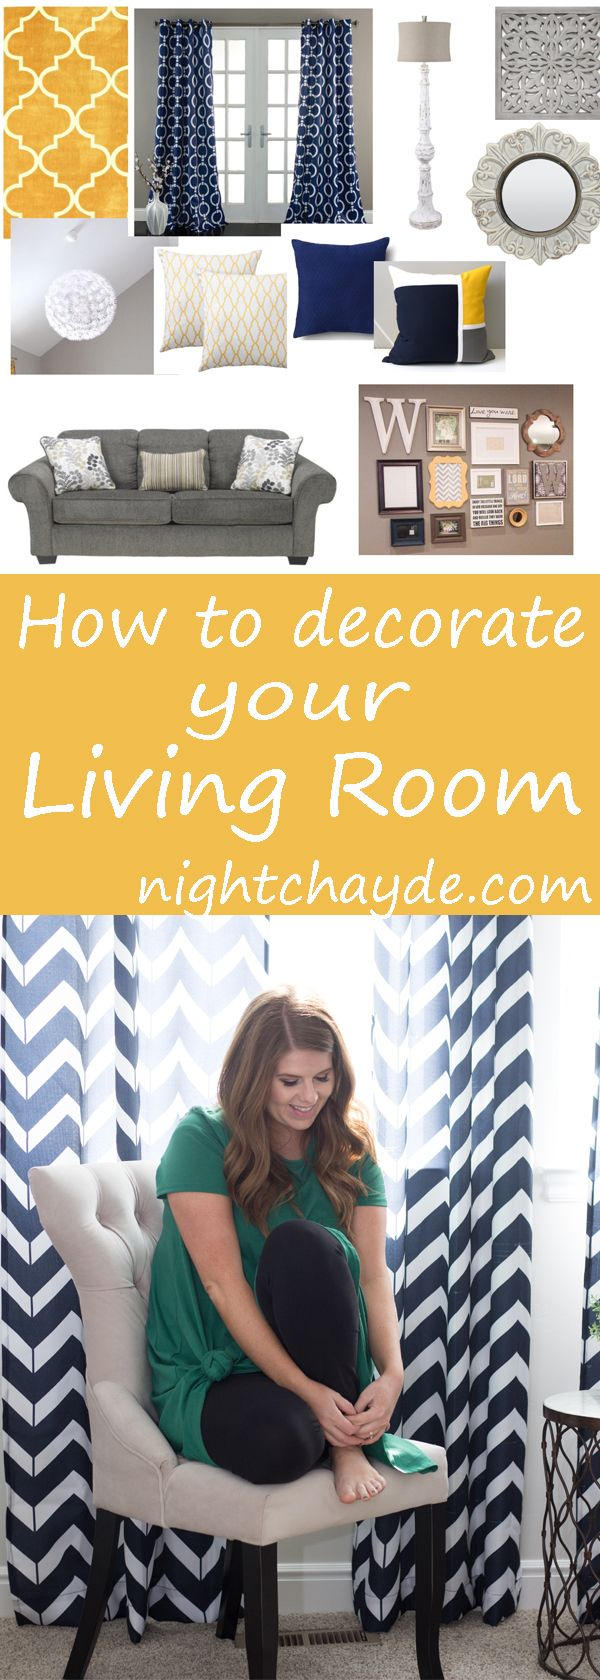 How to creat a mood board for your living room and buy all your decor on a budget. Stay on theme, on trend and on budget with these decorating tips. Your living room or other space will look better, be cohesive and you will know how to decorate on a budget.